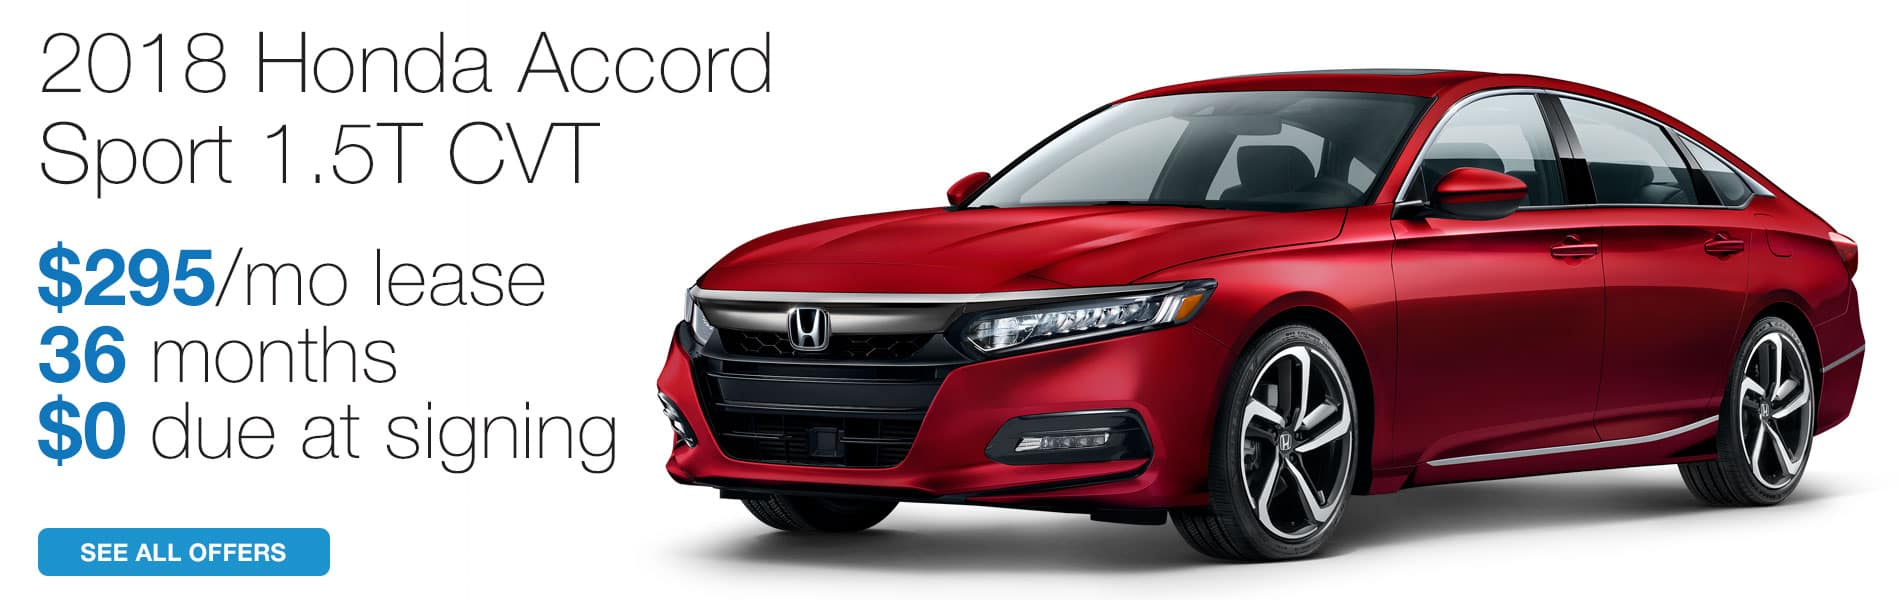 Lease a 2018 Honda Accord Sport CVT for $295 per month lease with $0 due at signing